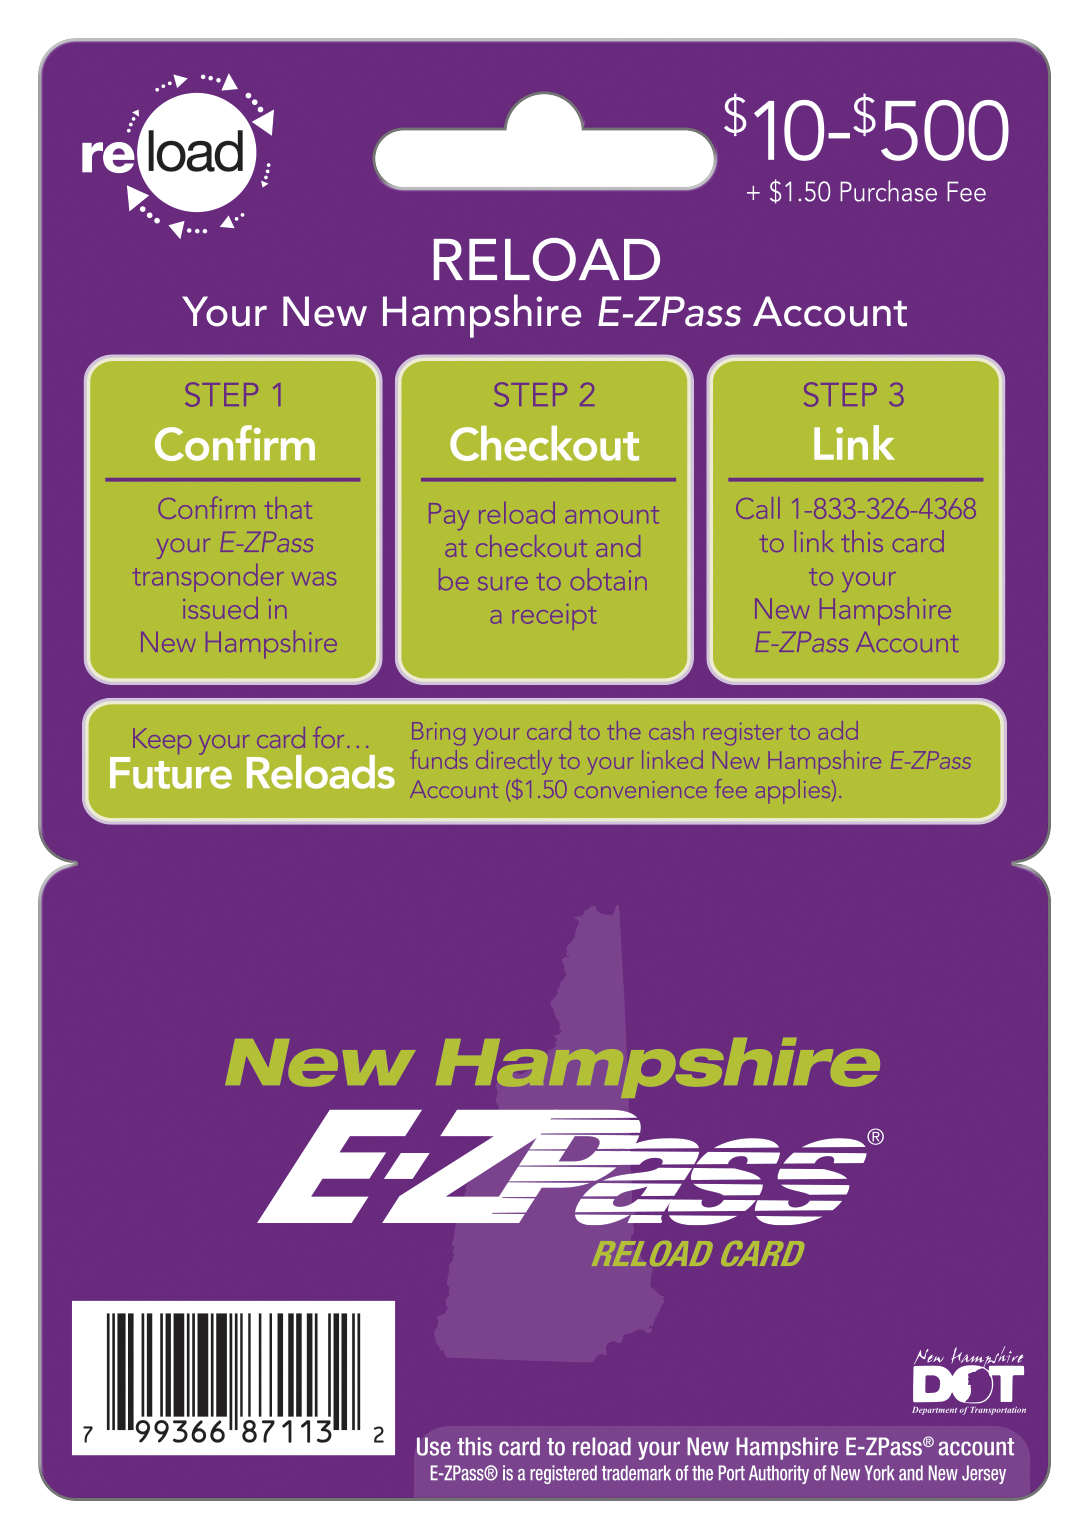 C2548_1300_New_Hampshire_Toll_Card_M6_VAR_10_500_1_50_061120.png